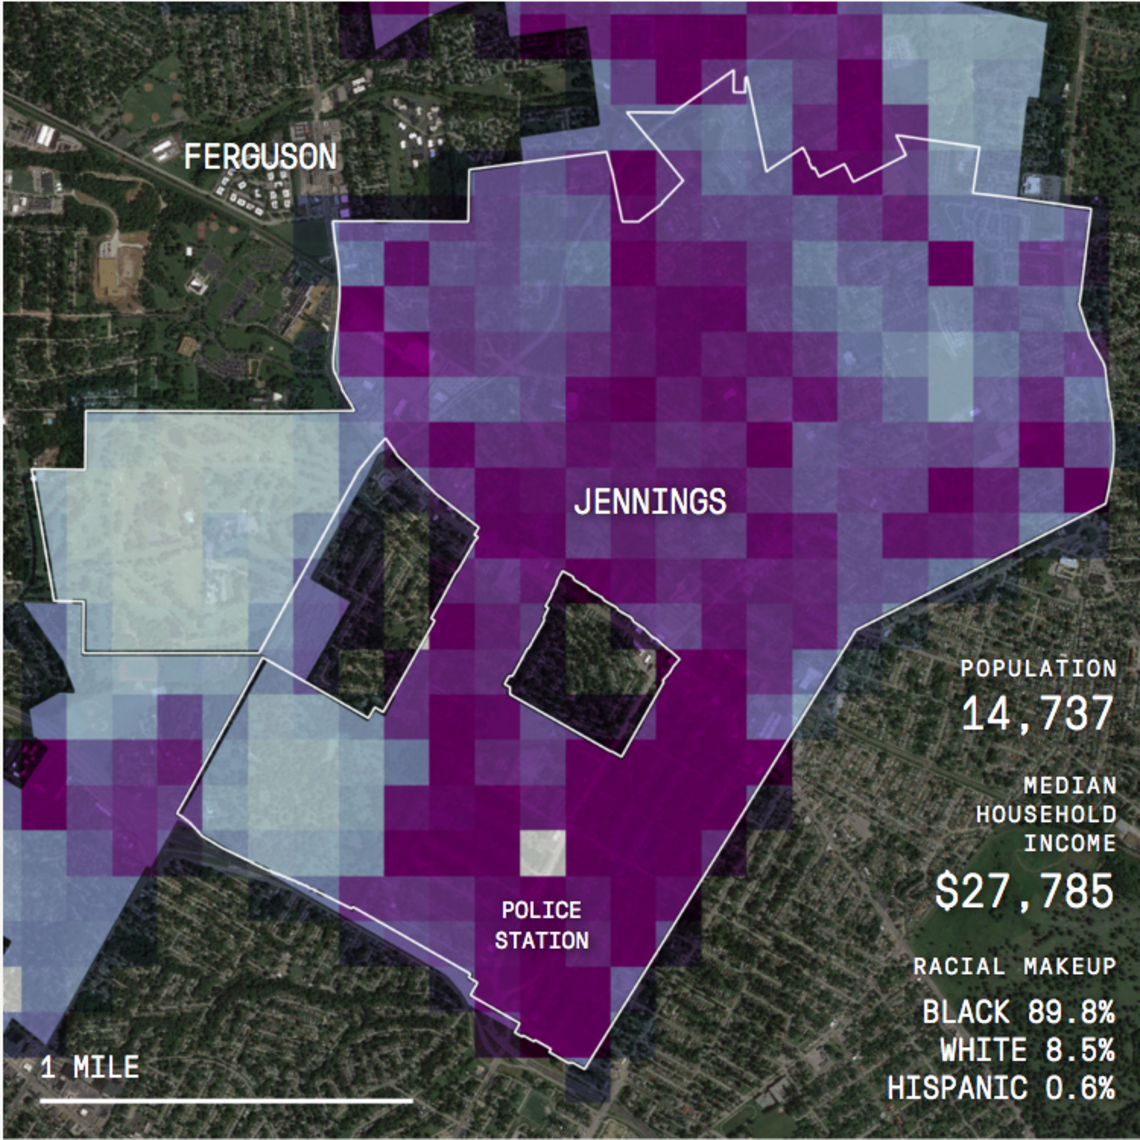 Jennings, divided into HunchLab squares on the morning of December 15, 2015. The DARKER THE SQUARE, the greater the risk that a crime will occur.